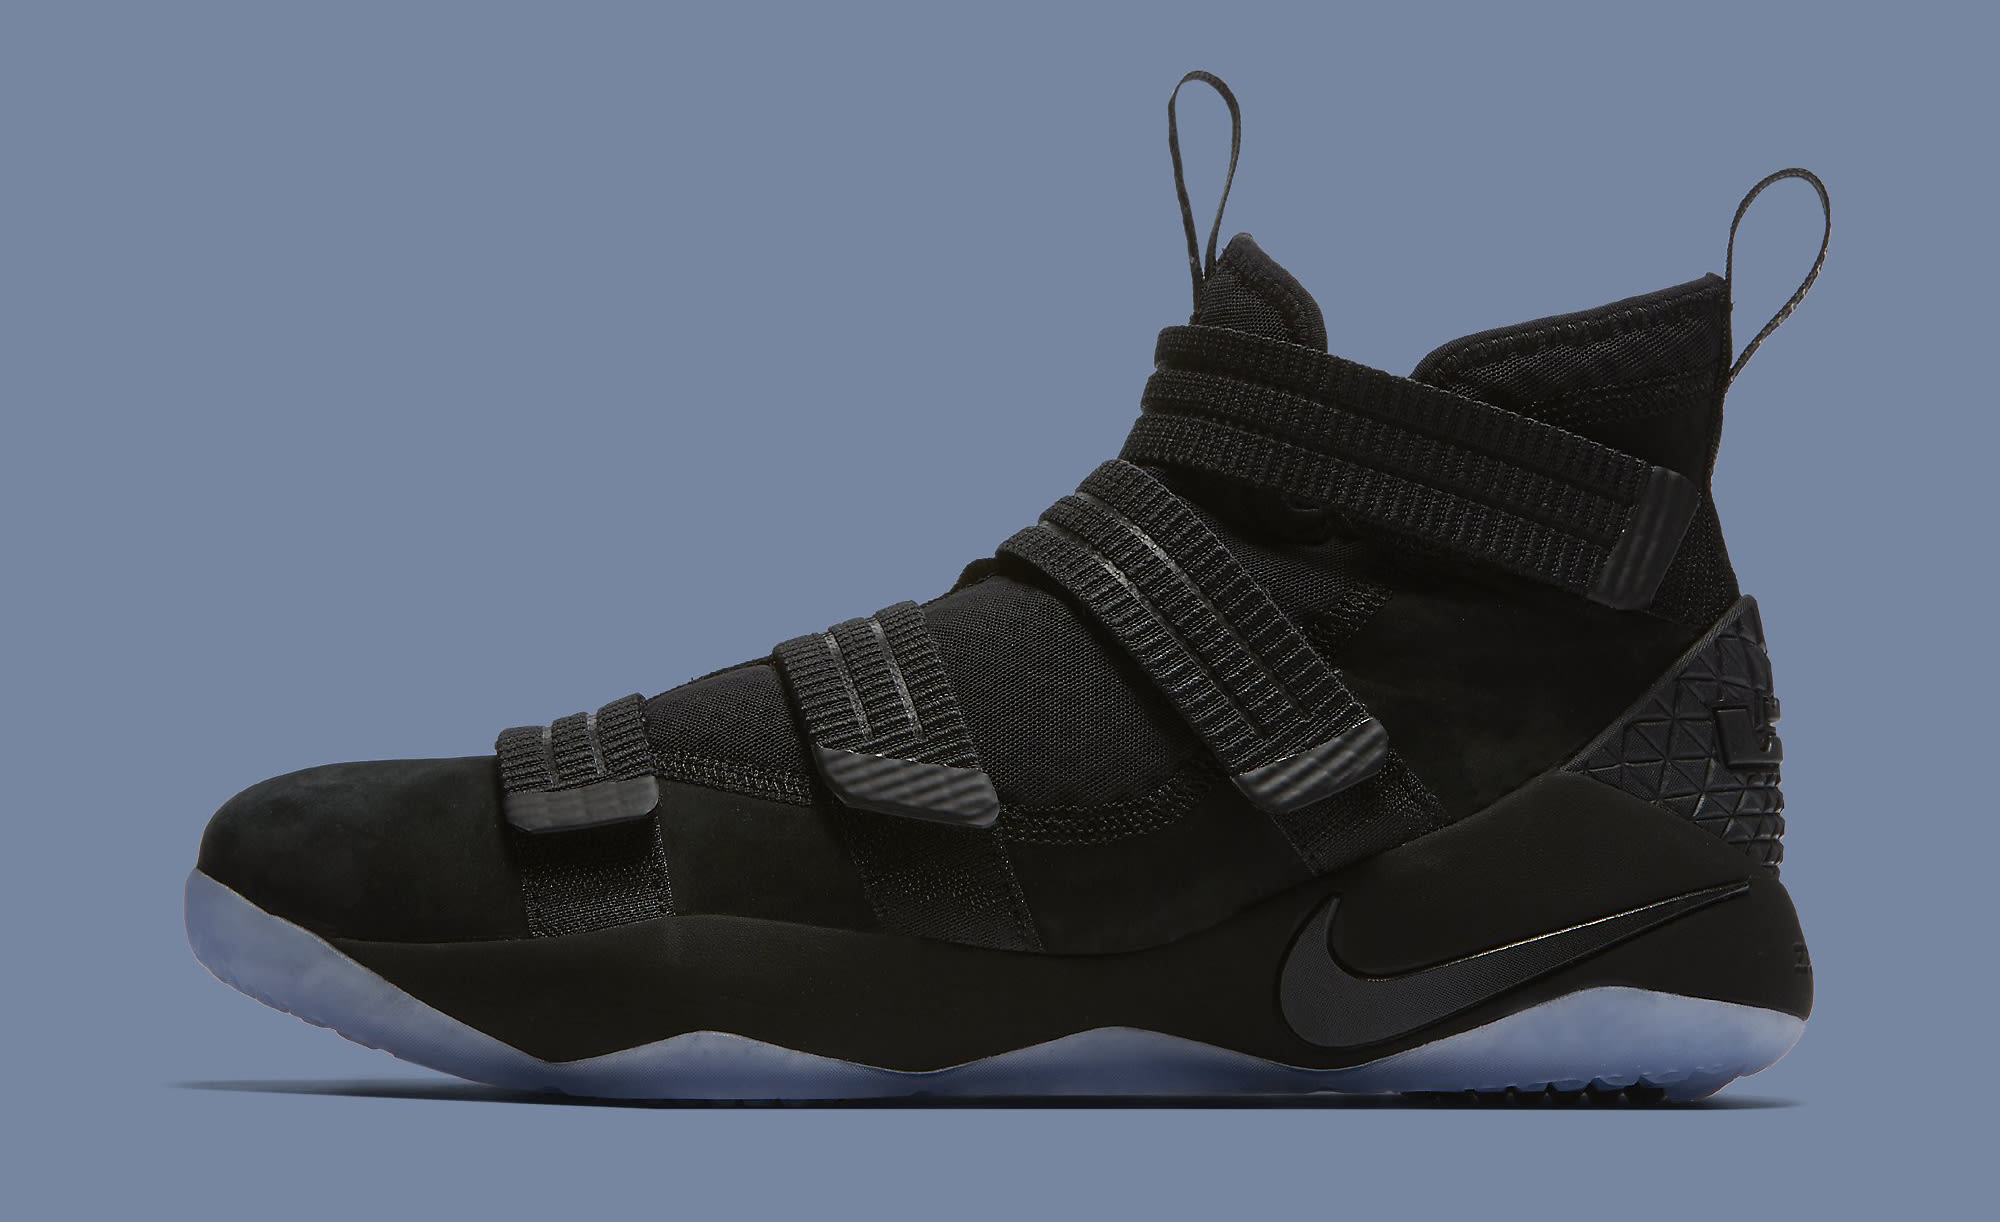 eb7aad02d1f8 Black Ice Nike LeBron Soldier 11 897646-001 Strive for Greatness Release  Date